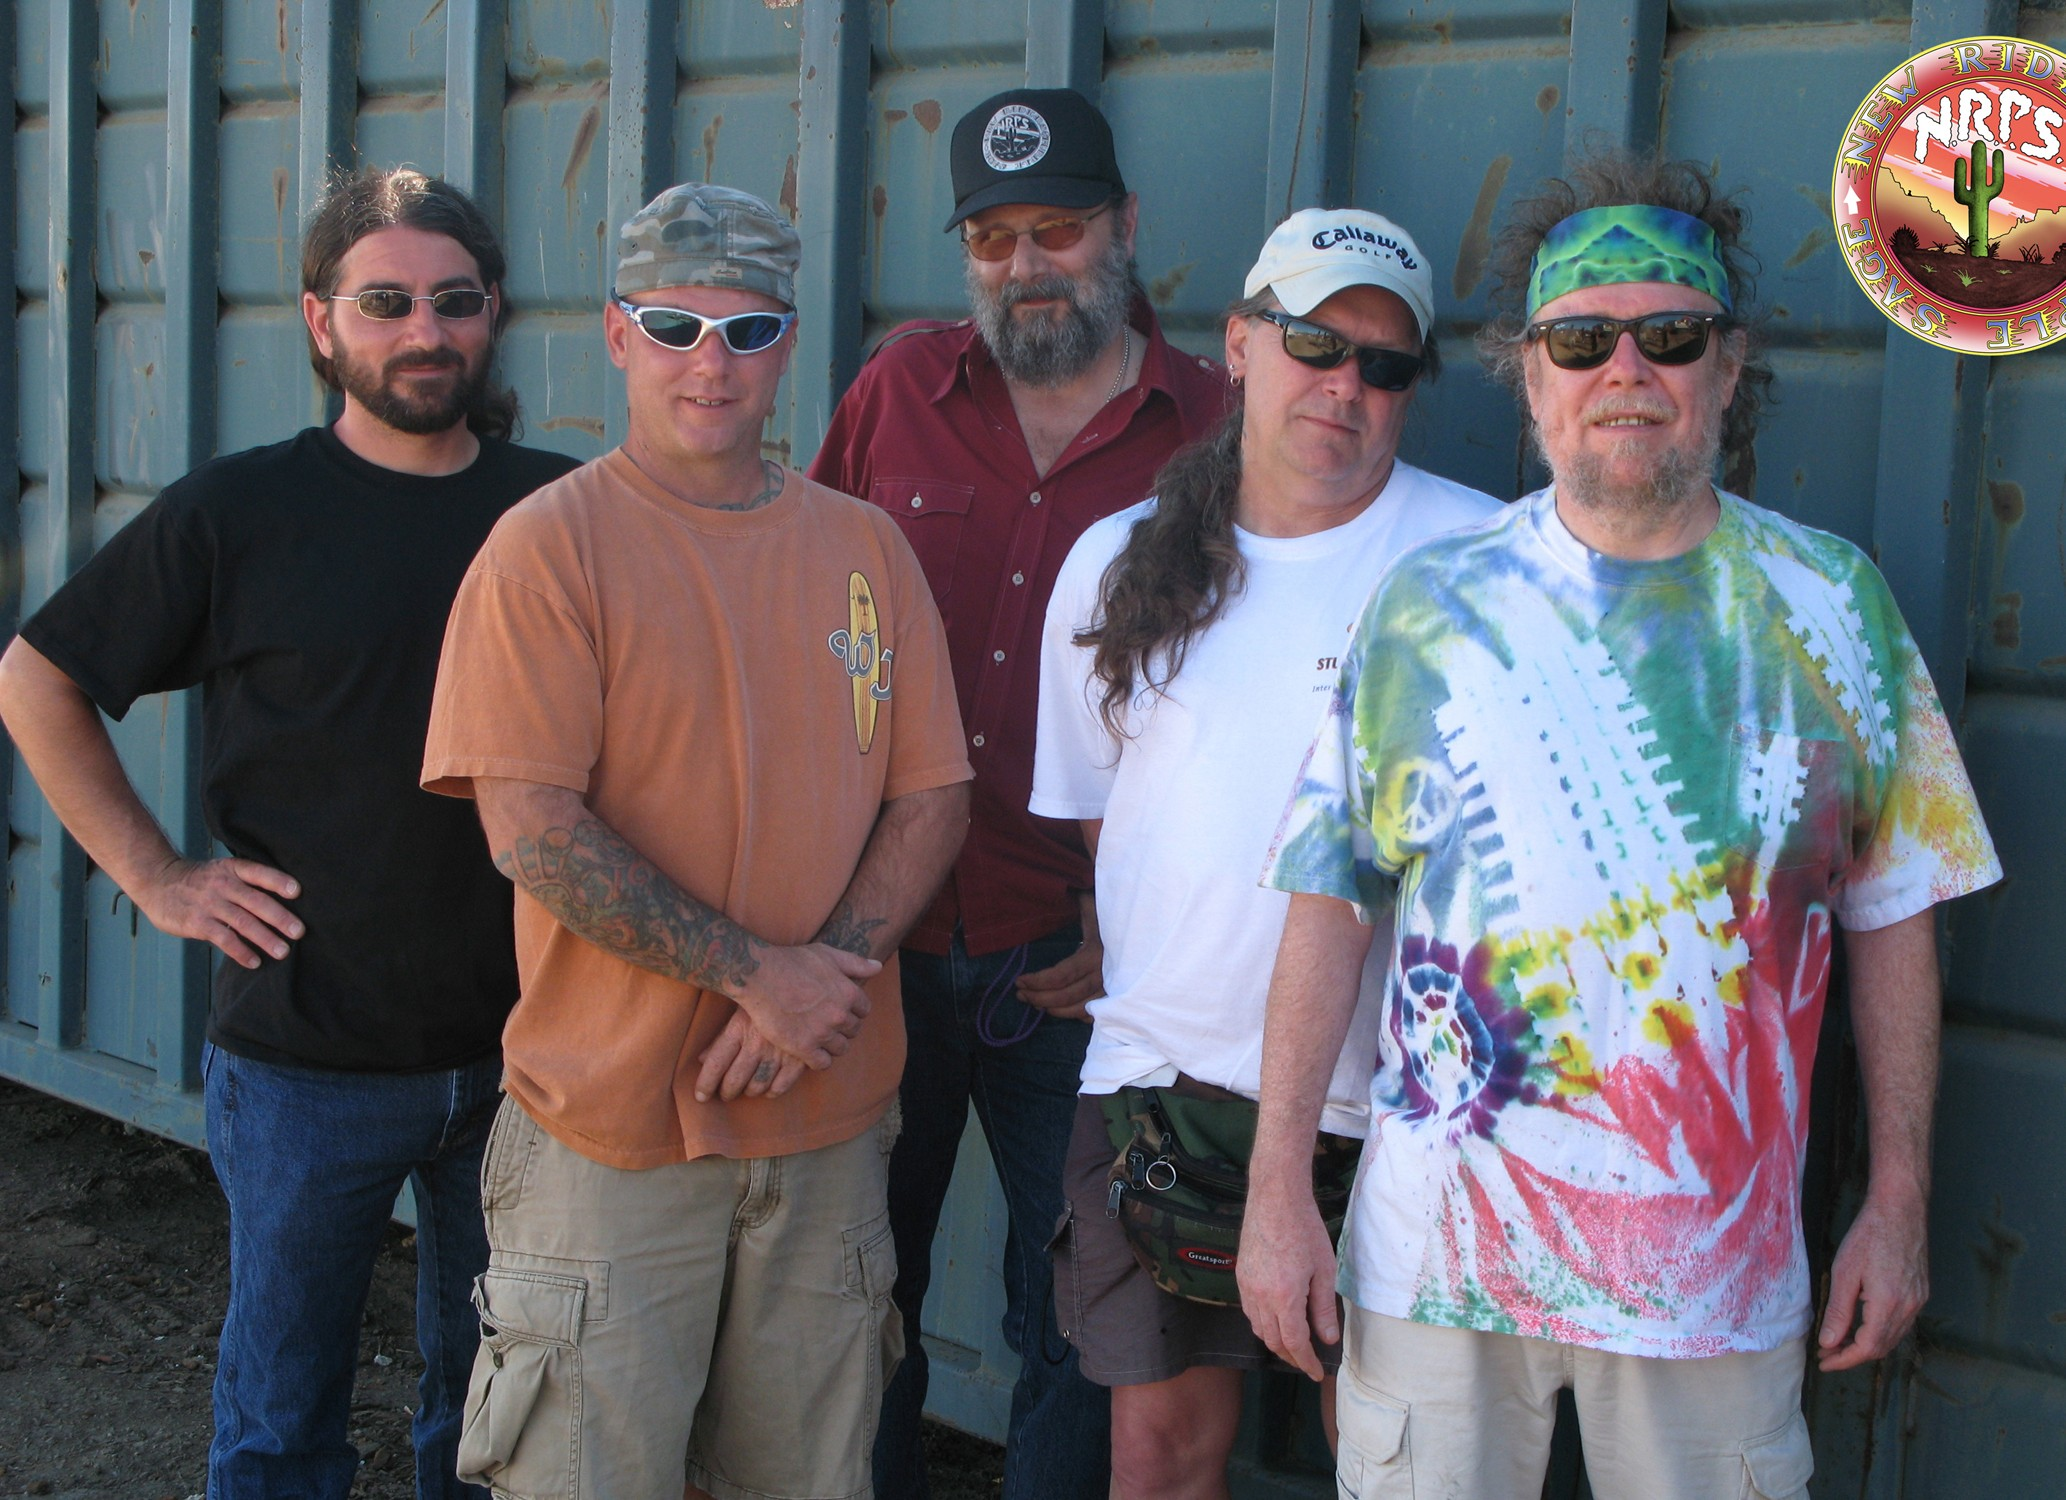 New Riders of the Purple Sage - PHOTO BY LISA LAW